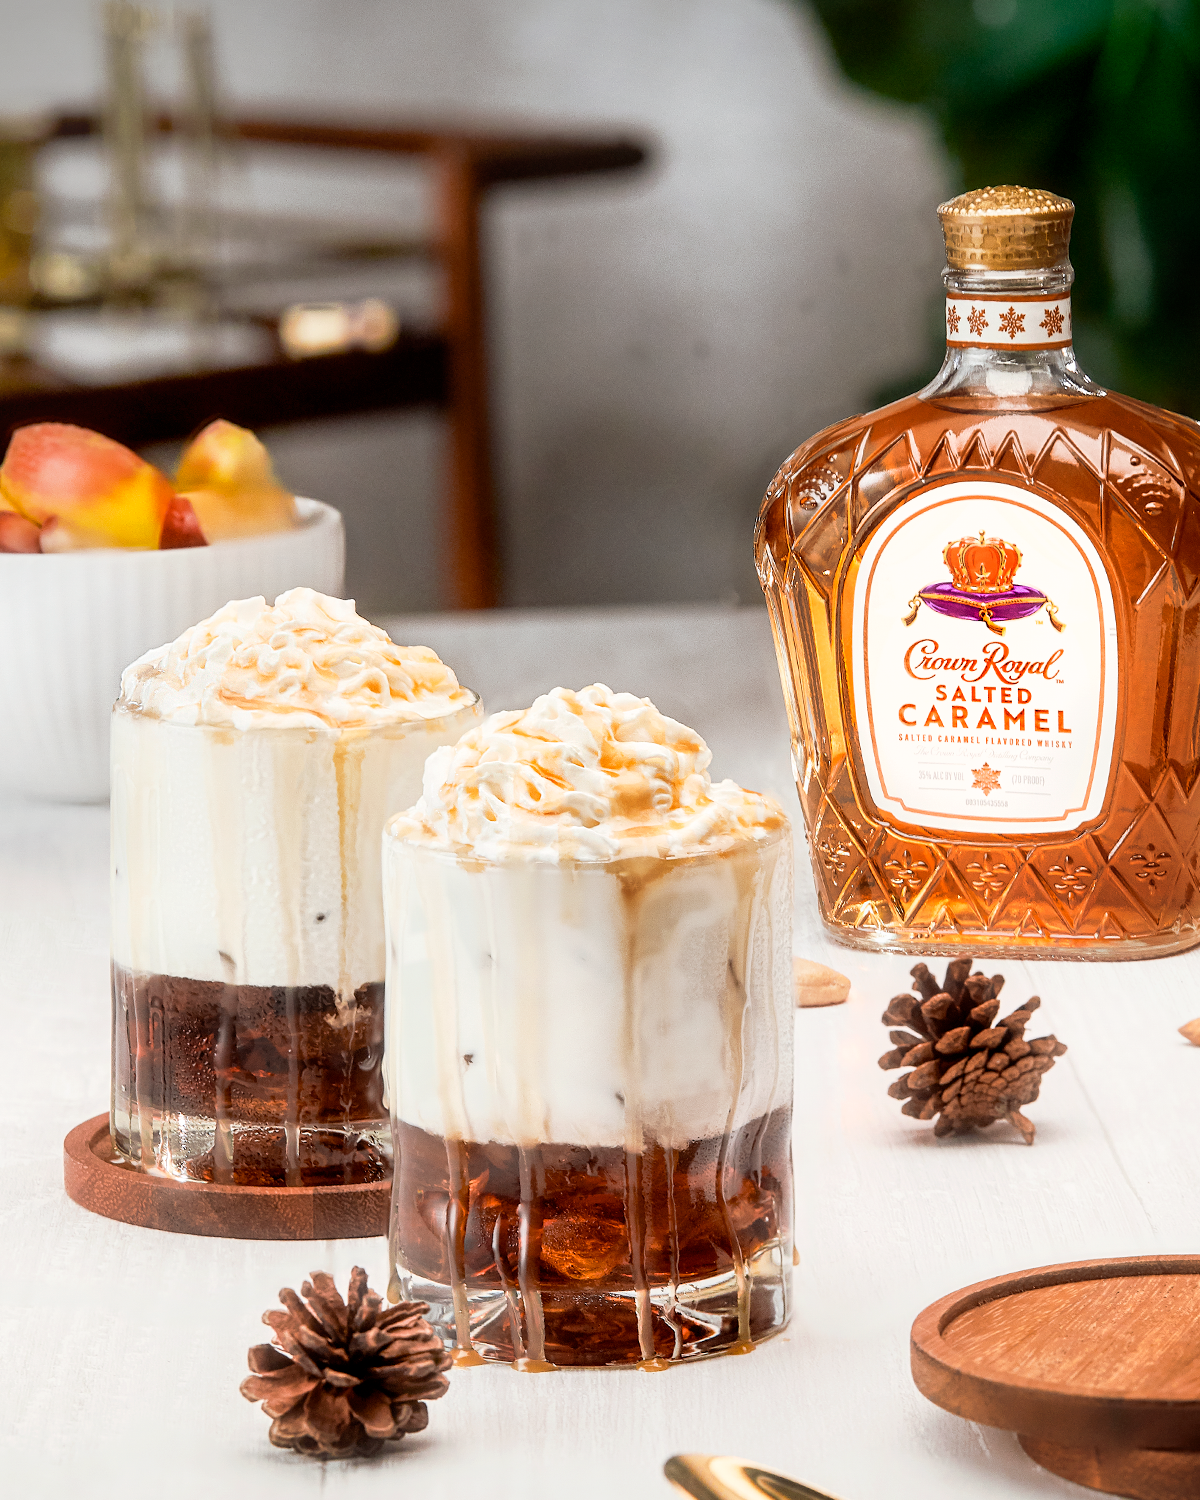 Crown Royal Salted Caramel White Russian Whisky Cocktail